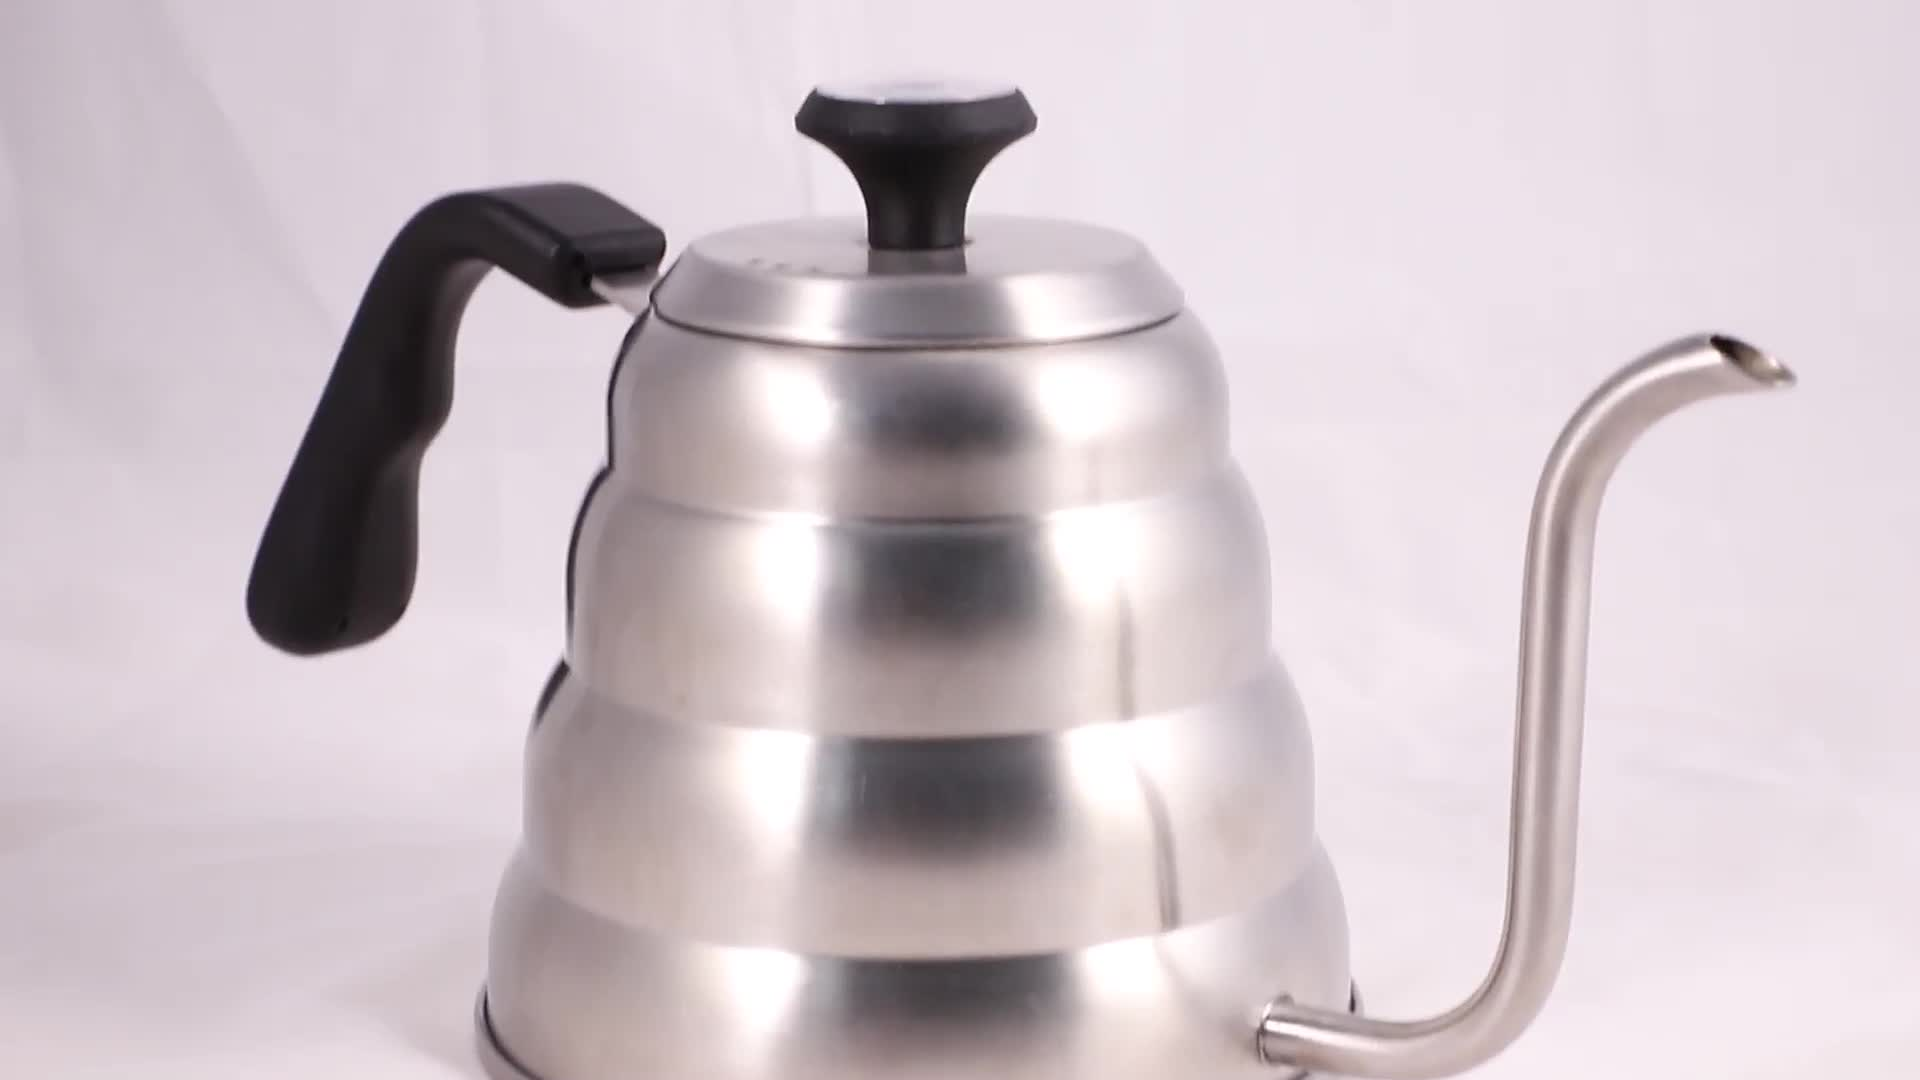 2018 high quality new coming stainless steel gooseneck kettle drip coffee and tea pot with thermometer